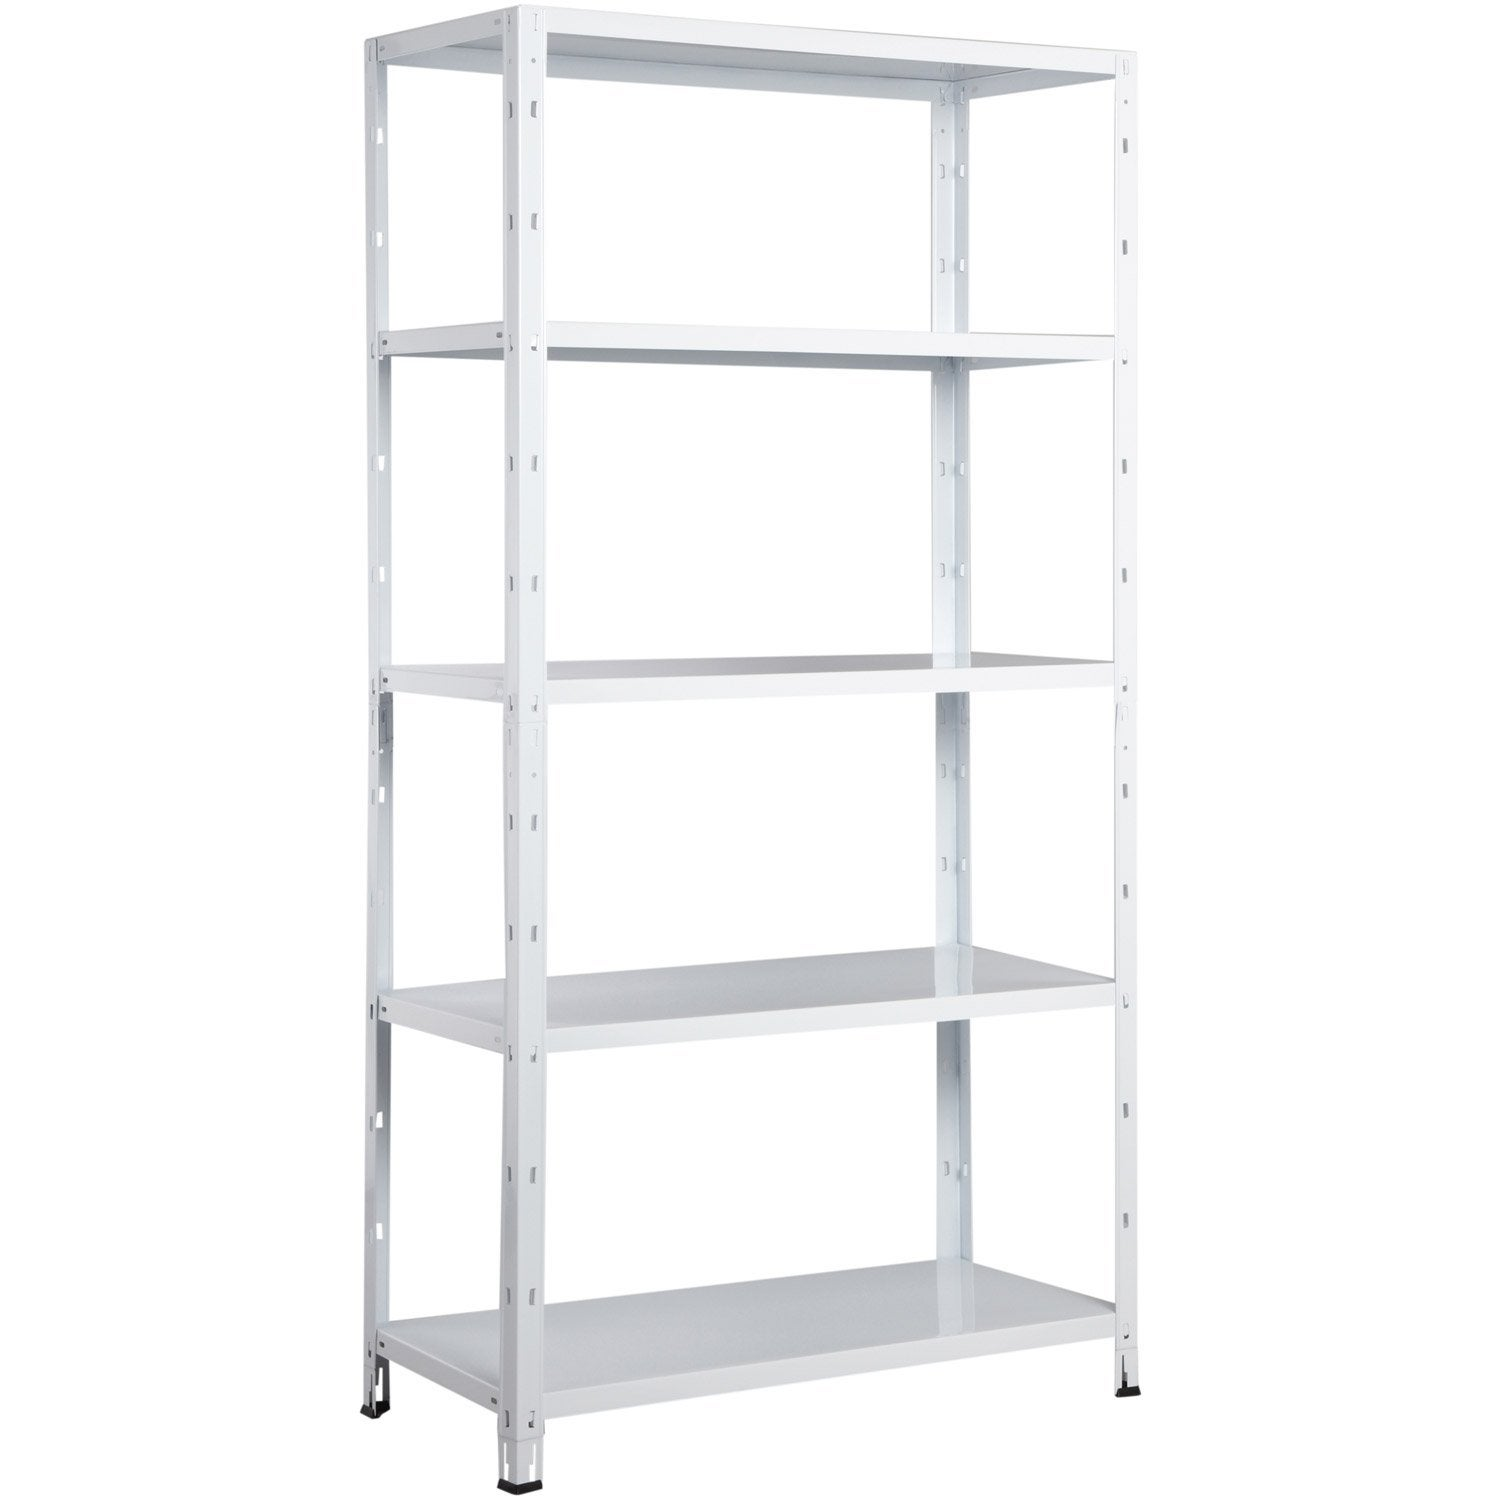 Etag re acier clicker 5 tablettes blanc x x cm leroy merlin - Etagere garage leroy merlin ...